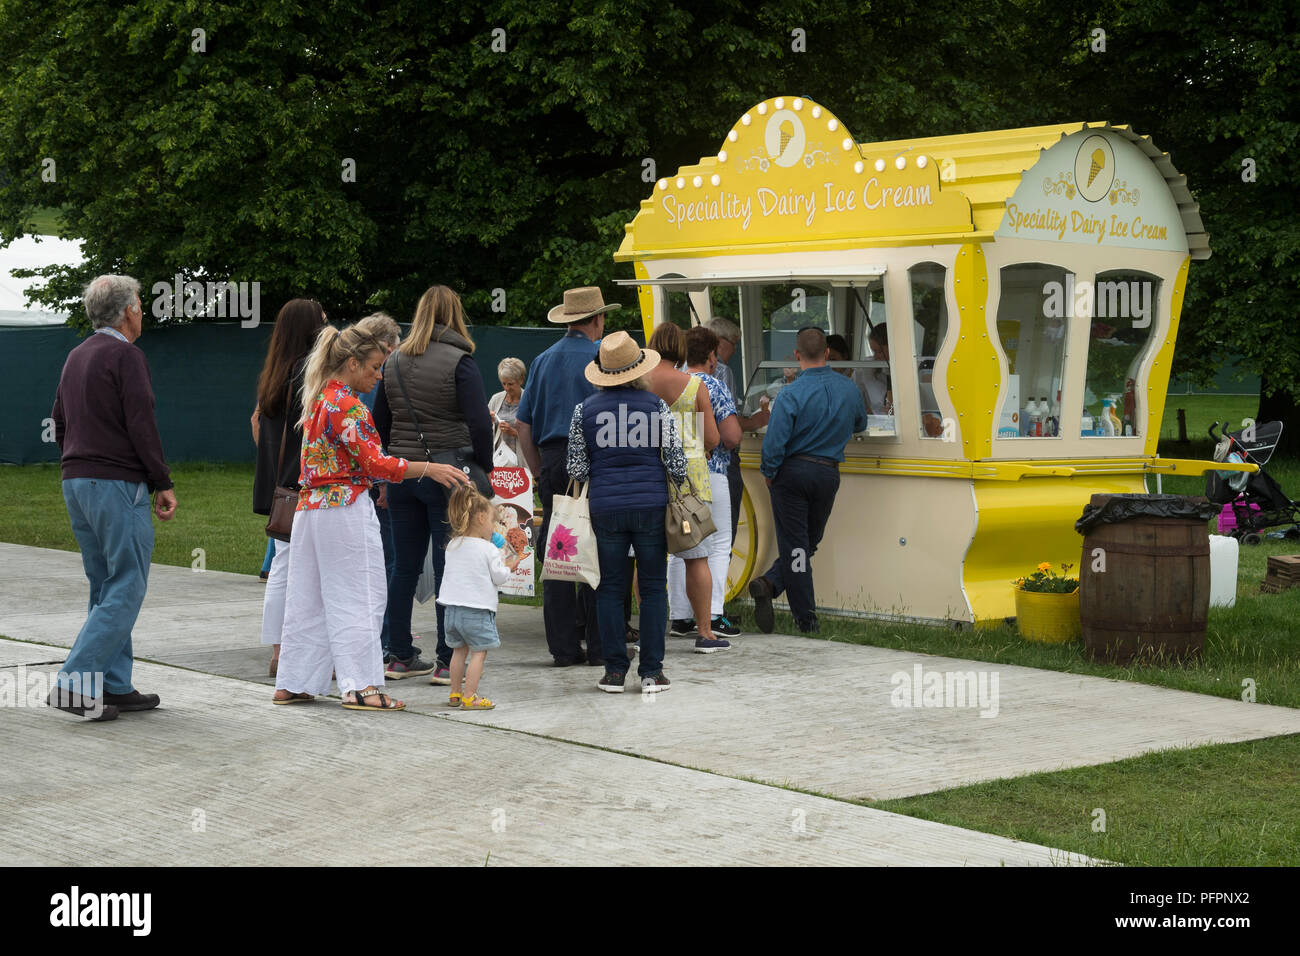 People old & young, queuing for speciality ice creams at vintage style mobile catering hut - RHS Chatsworth Flower Show, Derbyshire, England, UK. - Stock Image